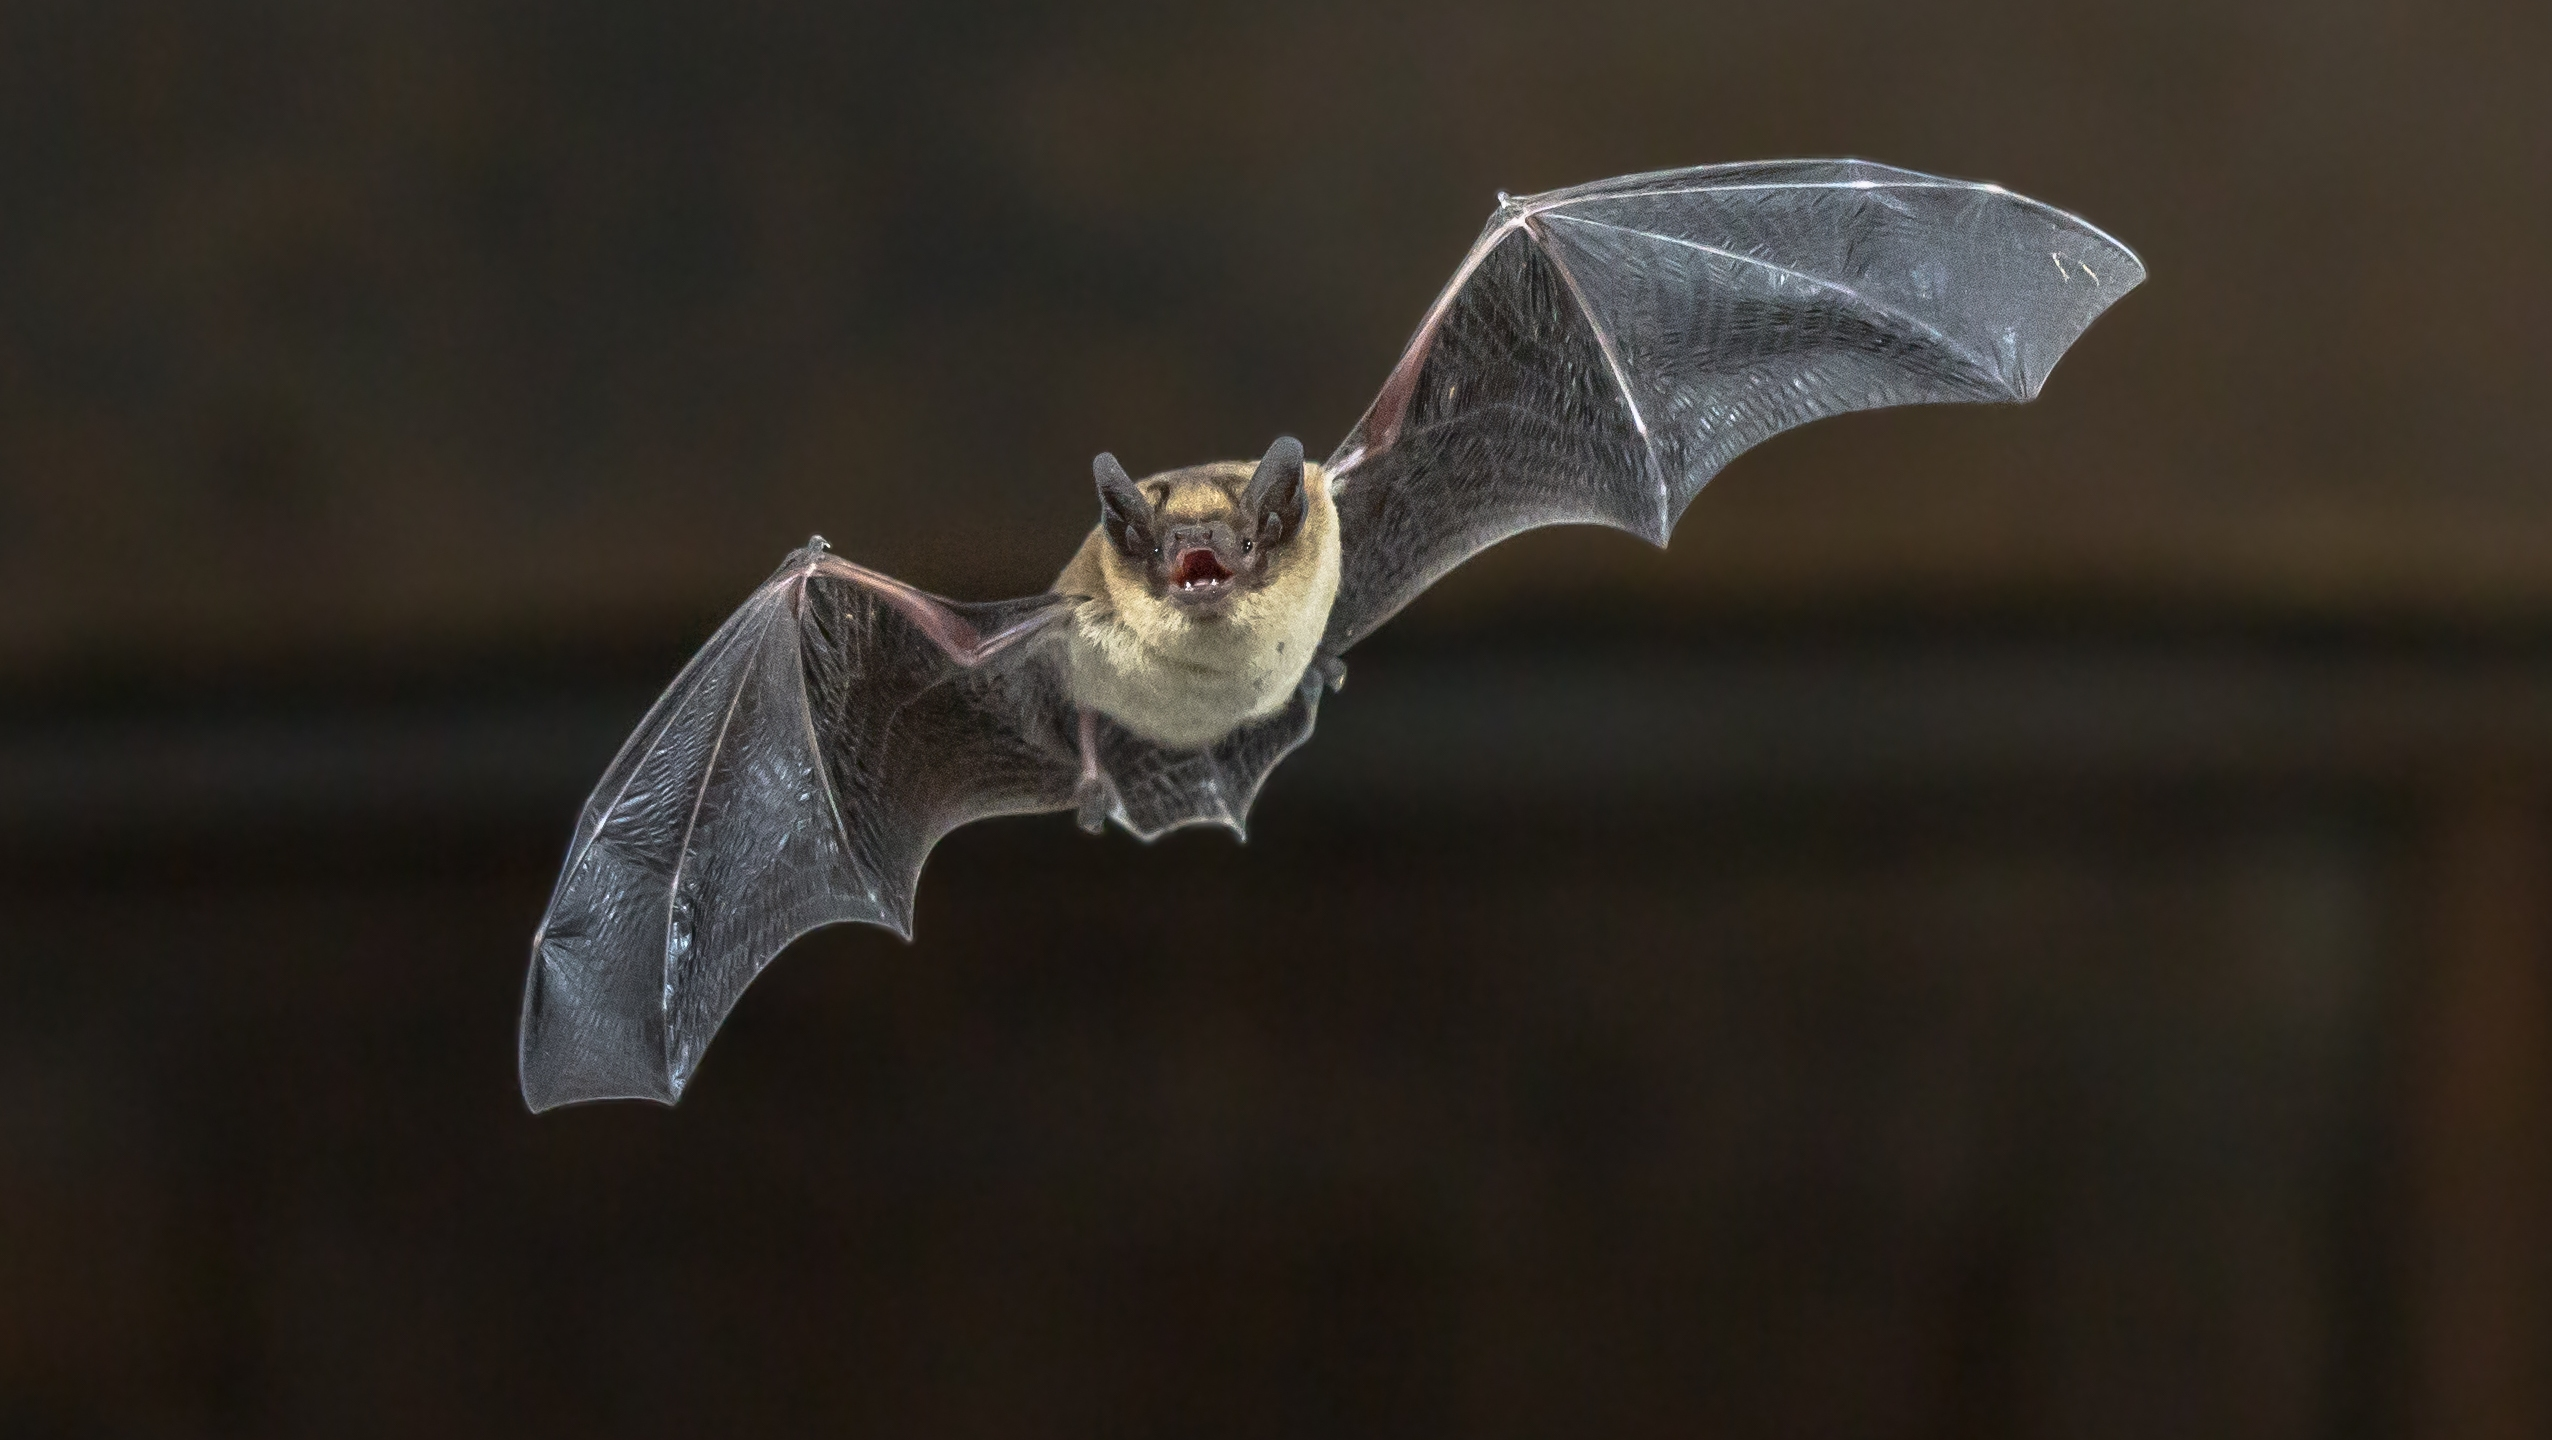 A bat is seen in an undated image. (Credit: iStock / Getty Images Plus)